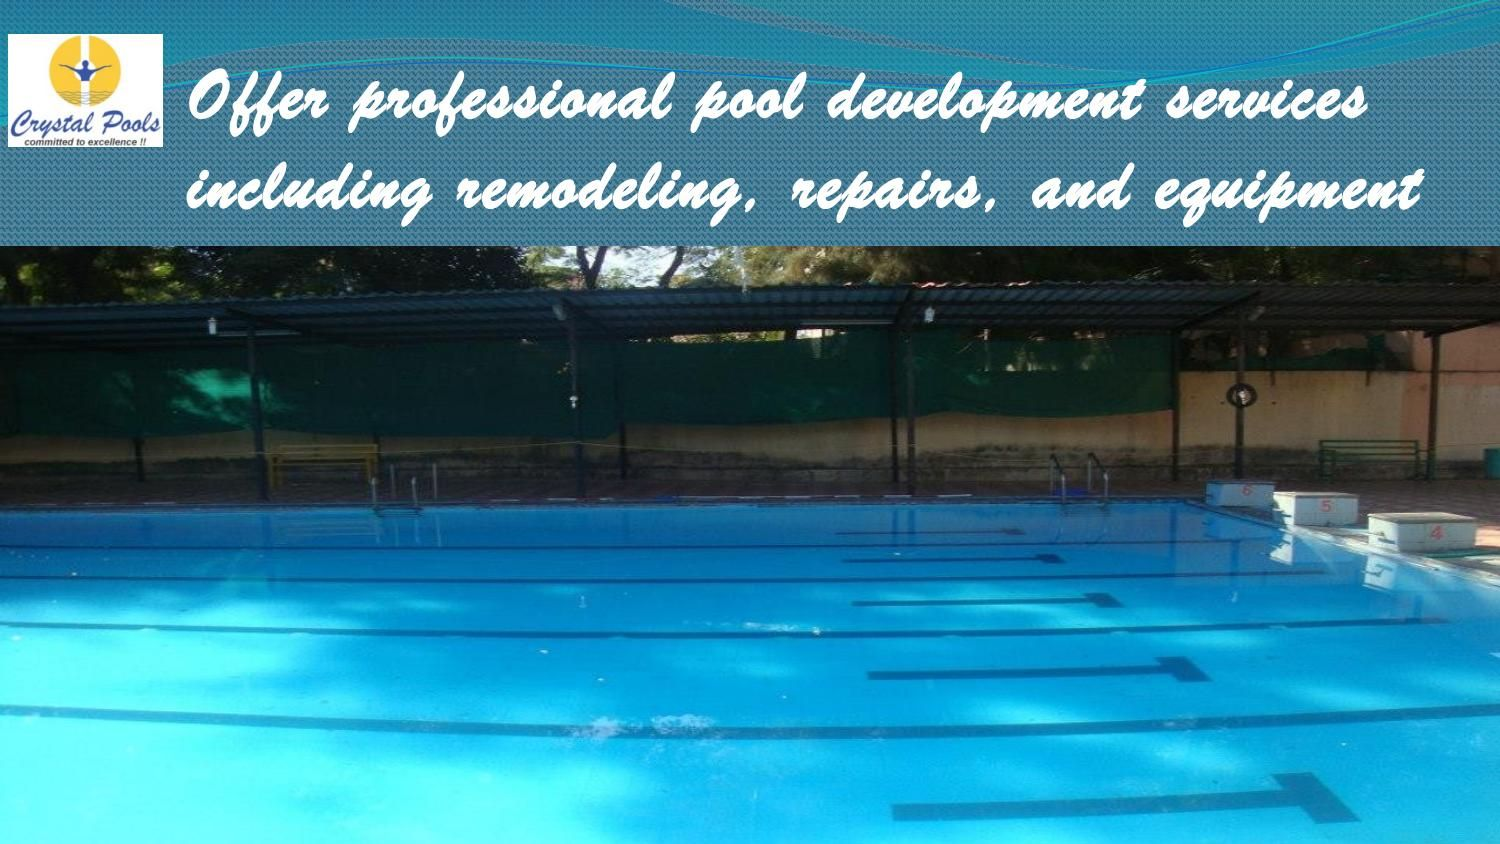 Offer professional pool development services including remodeling, repairs, and equipment  Commercial swimming pool design at Pune make an effort to be the most price aggressive and number one ranked (both in client support and development quality) organizations in the area.